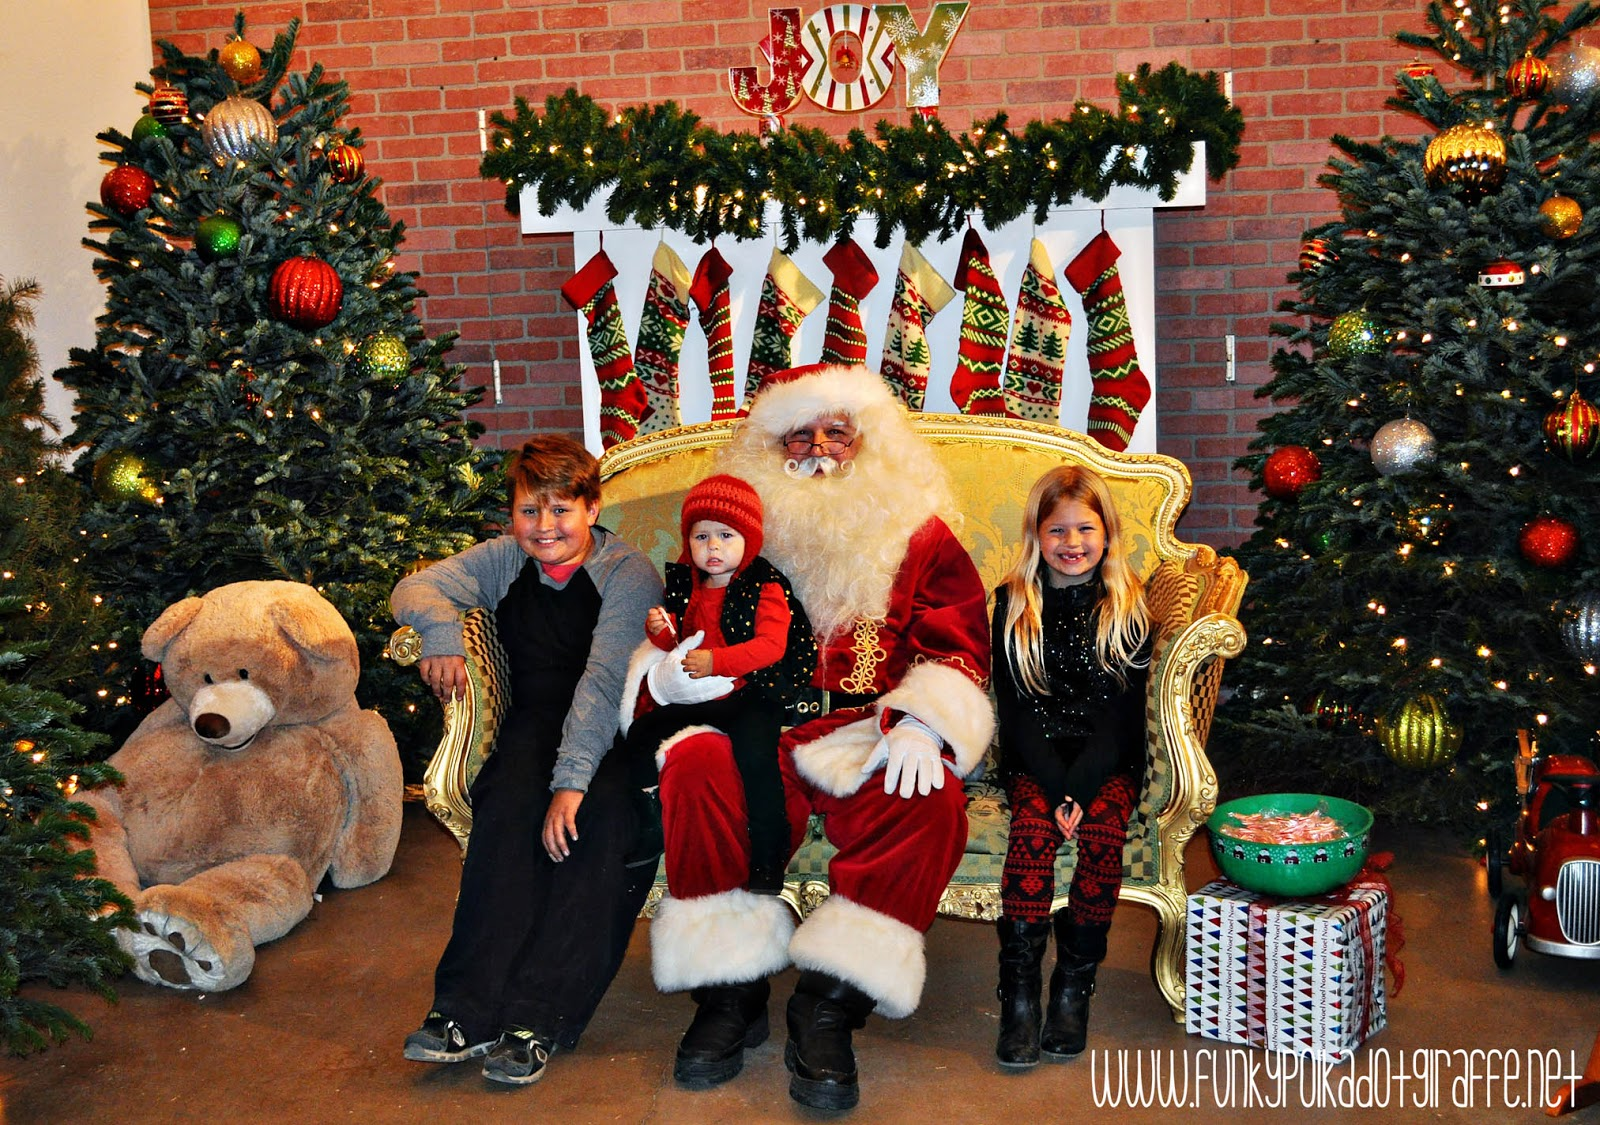 orange county you can take pictures with santa using your own camera or you can purchase a 5x7 photo taken by the irvine park railroad - Irvine Christmas Train